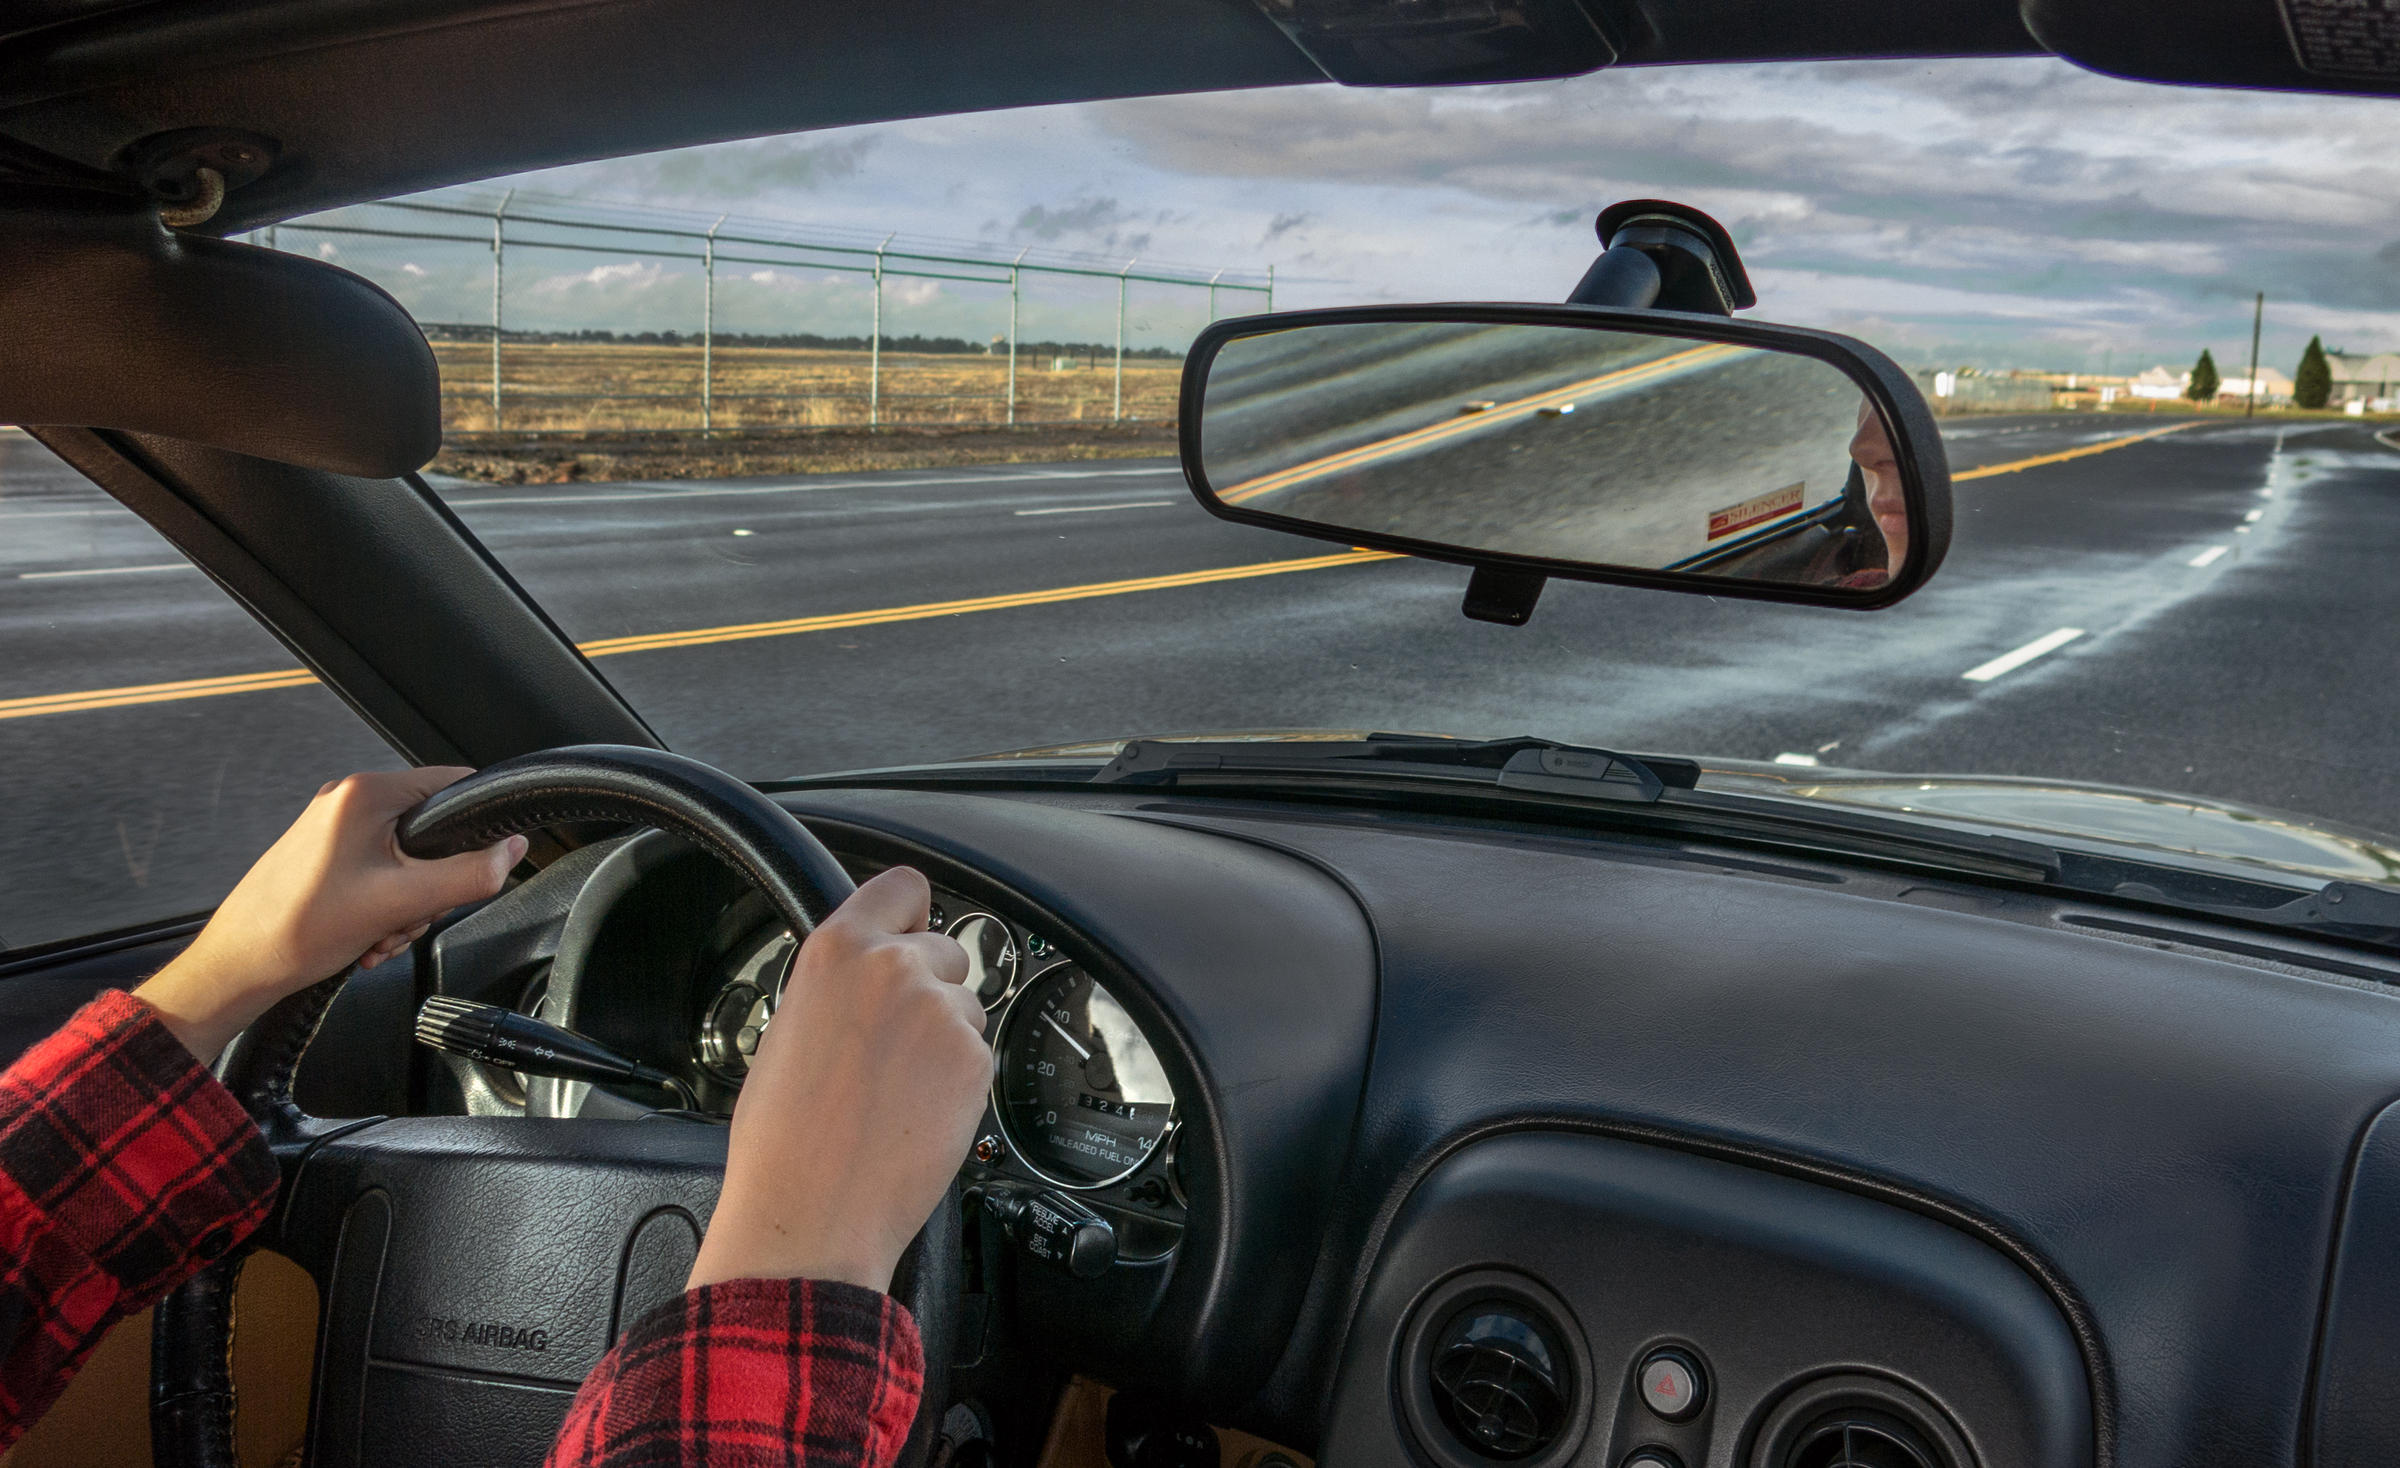 Behind The Wheel >> Behind The Wheel Hands Free Devices Are Still Distracting